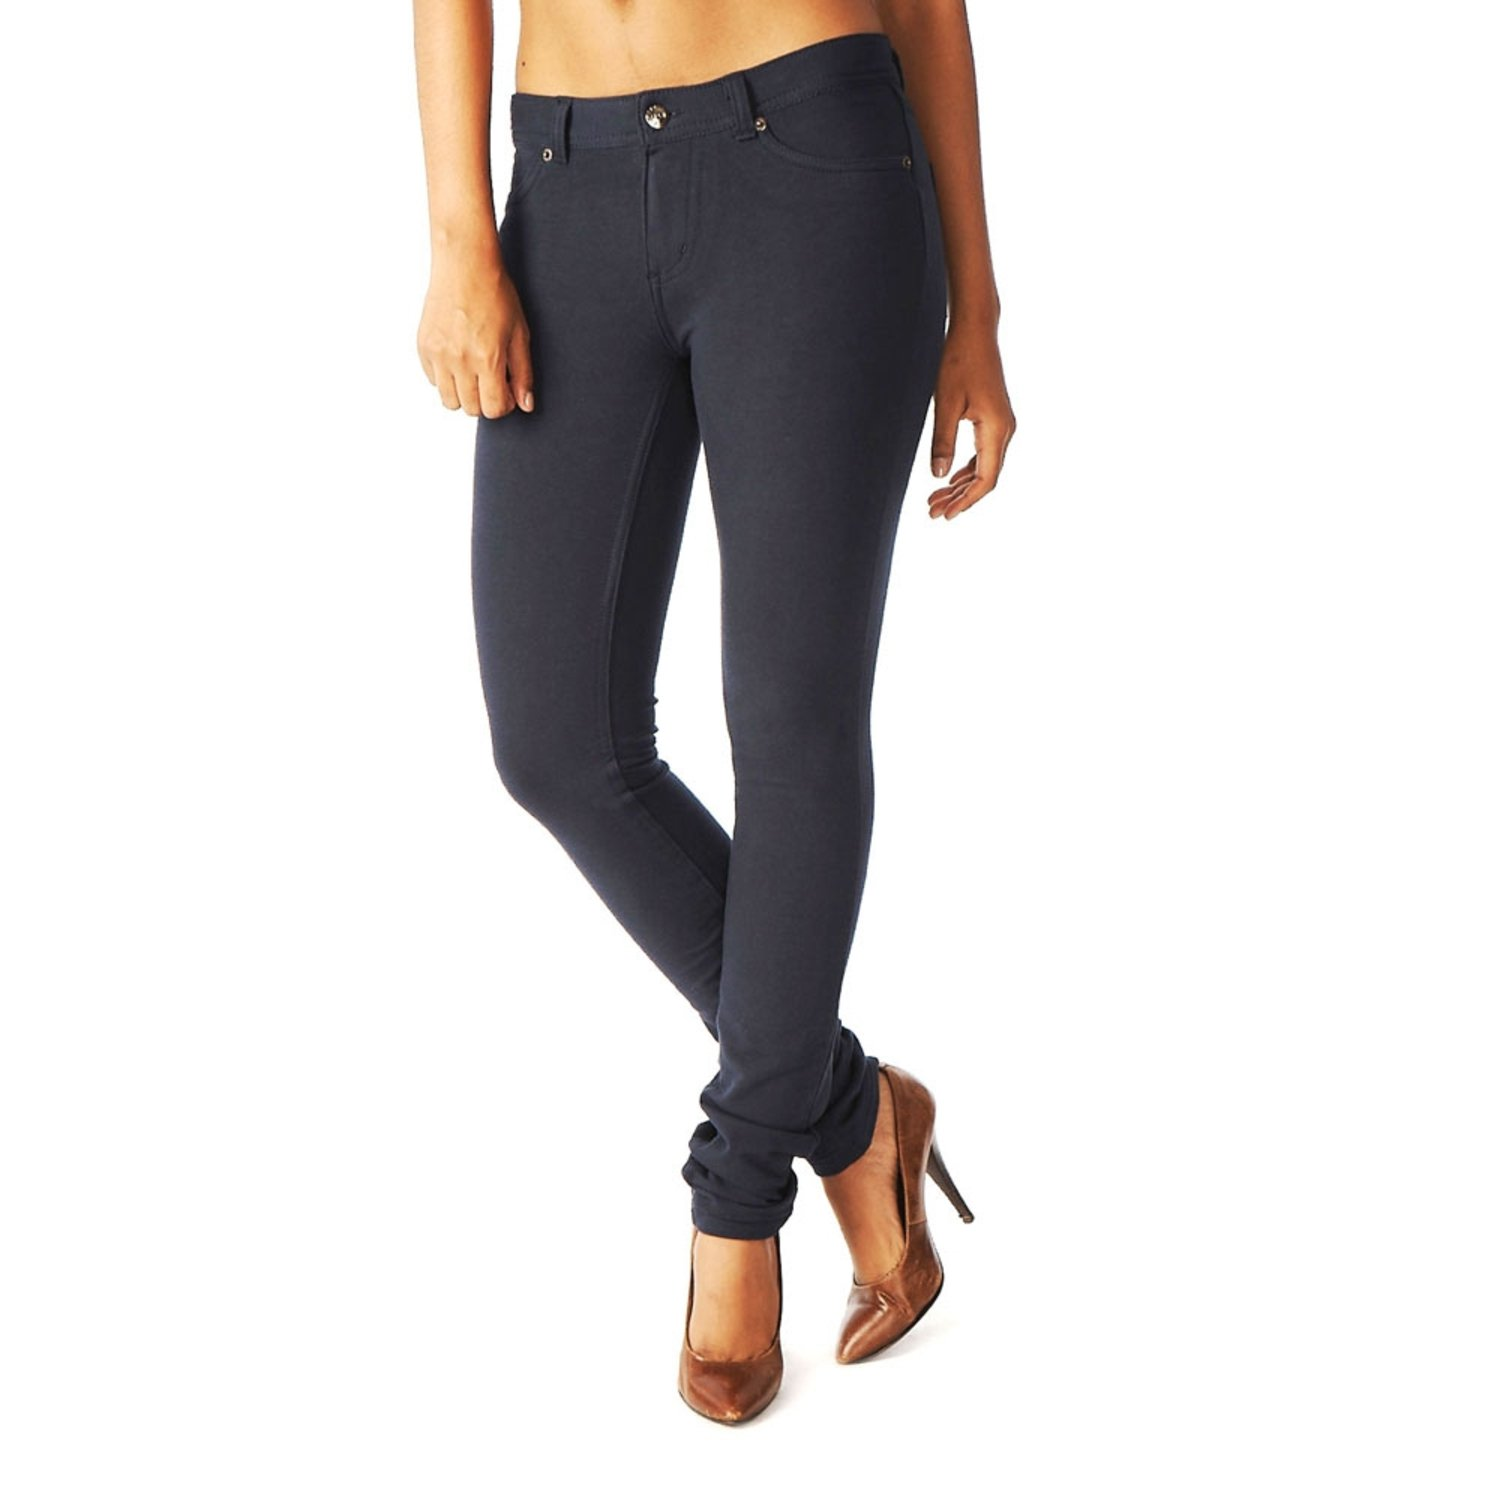 SoHo Junior French Terry Skinny Jegging Pants